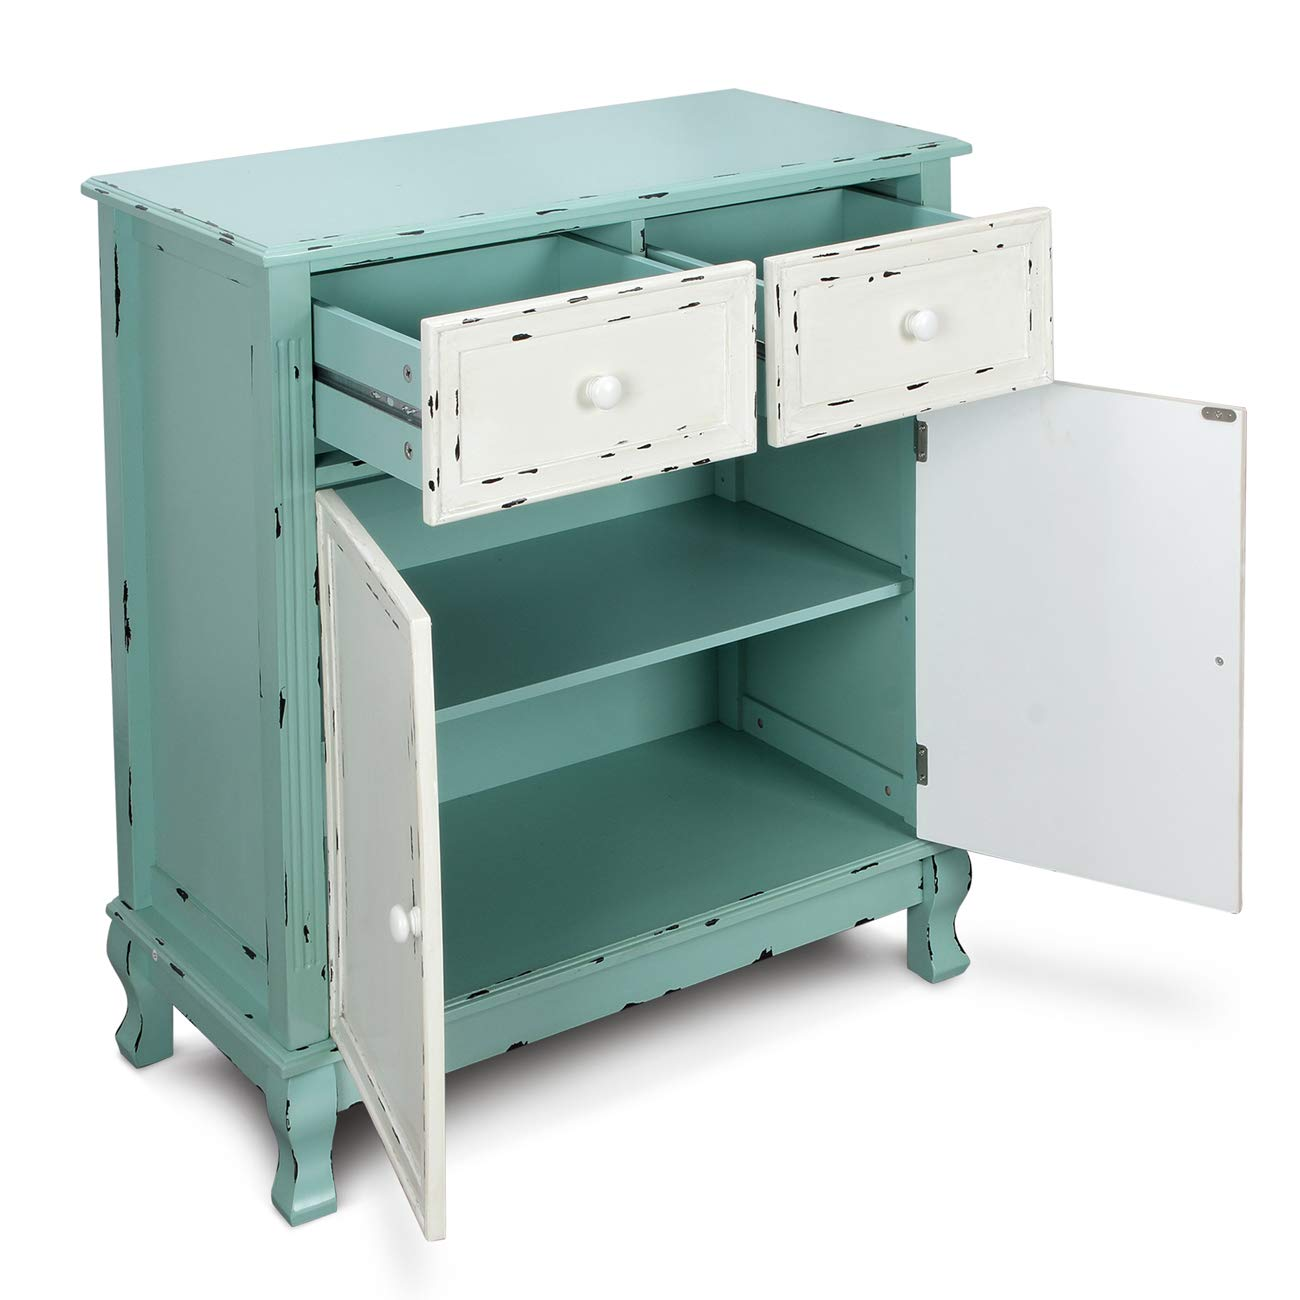 BELLEZE Wood Cabinet with Drawers and Doors Vintage Accent Storage Chest for Entryway, Living Room (Antique Blue) by Belleze (Image #3)